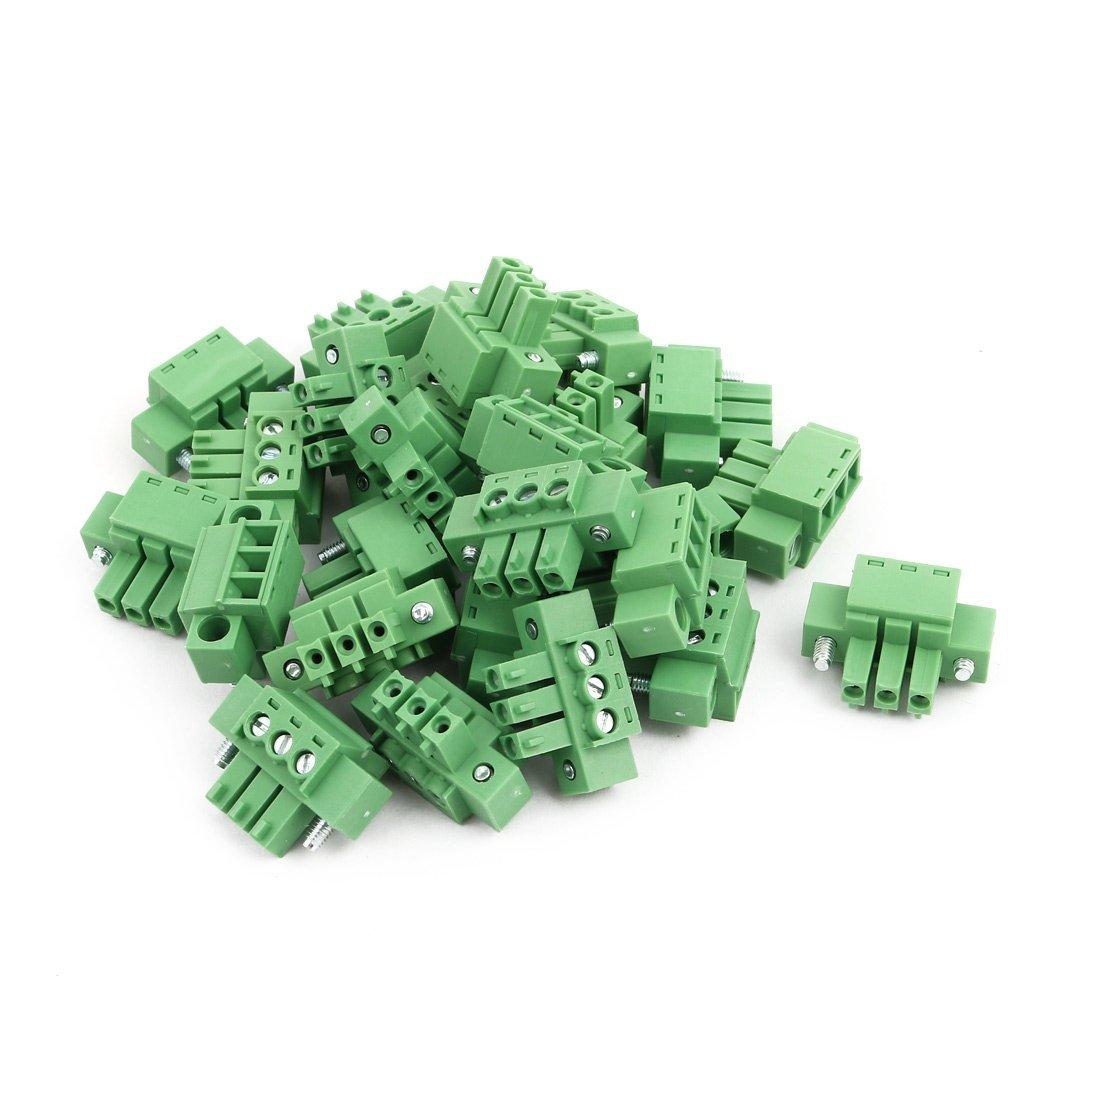 uxcell 25Pcs AC 300V 8A 3.81mm Pitch 3P Terminal Block Wire Connection for PCB Mounting Green